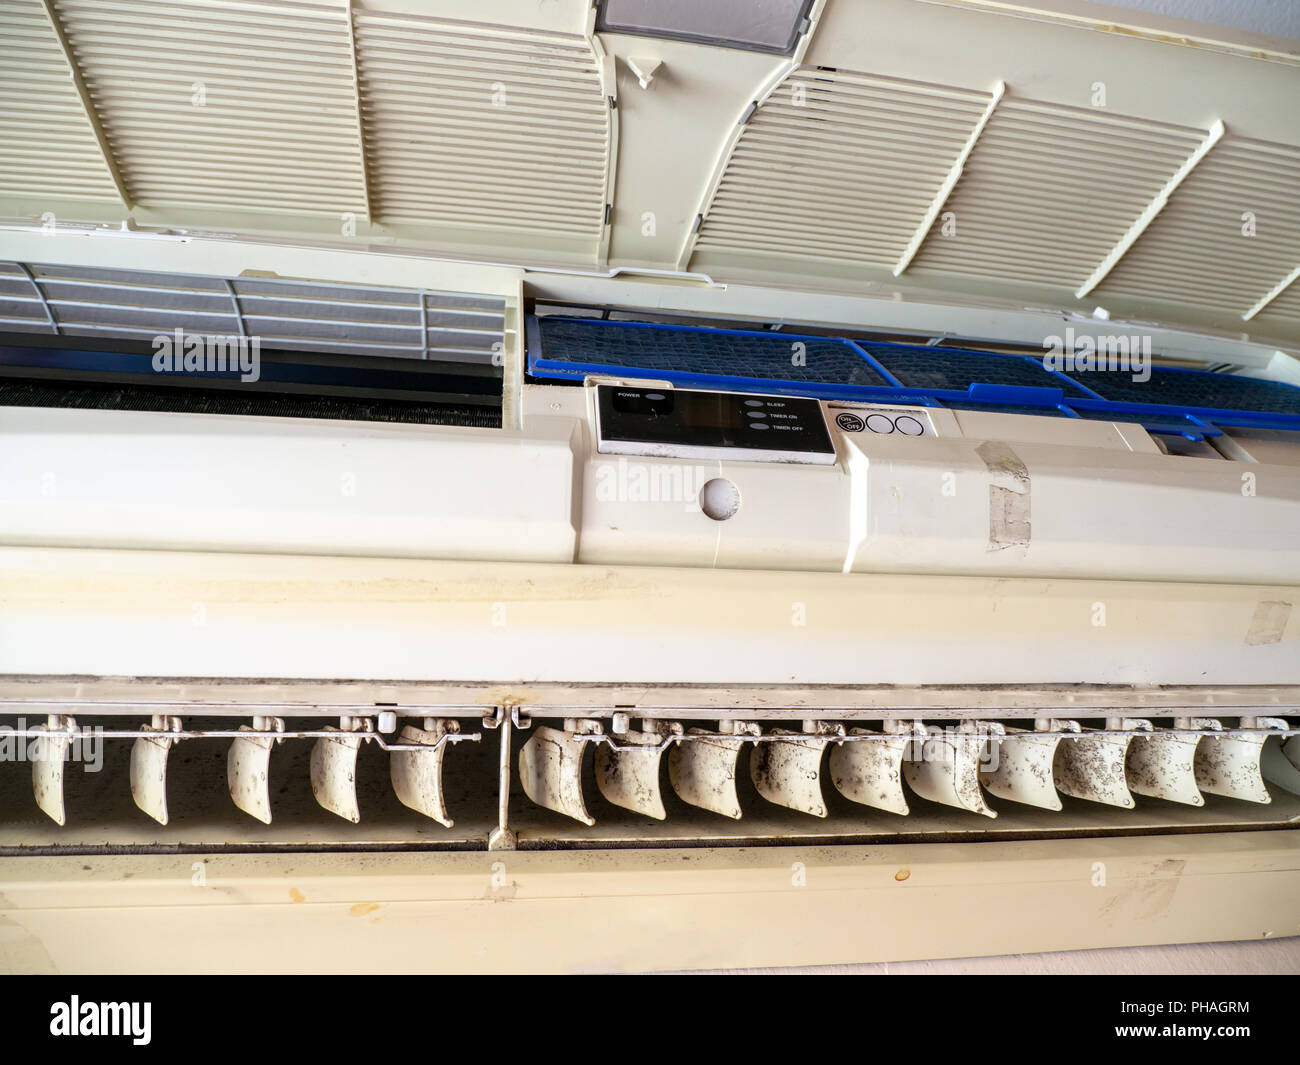 close up mold in air conditioner system. Danger and the cause of pneumonia and respiratory diseases in house or office. air condition must clean evern - Stock Image